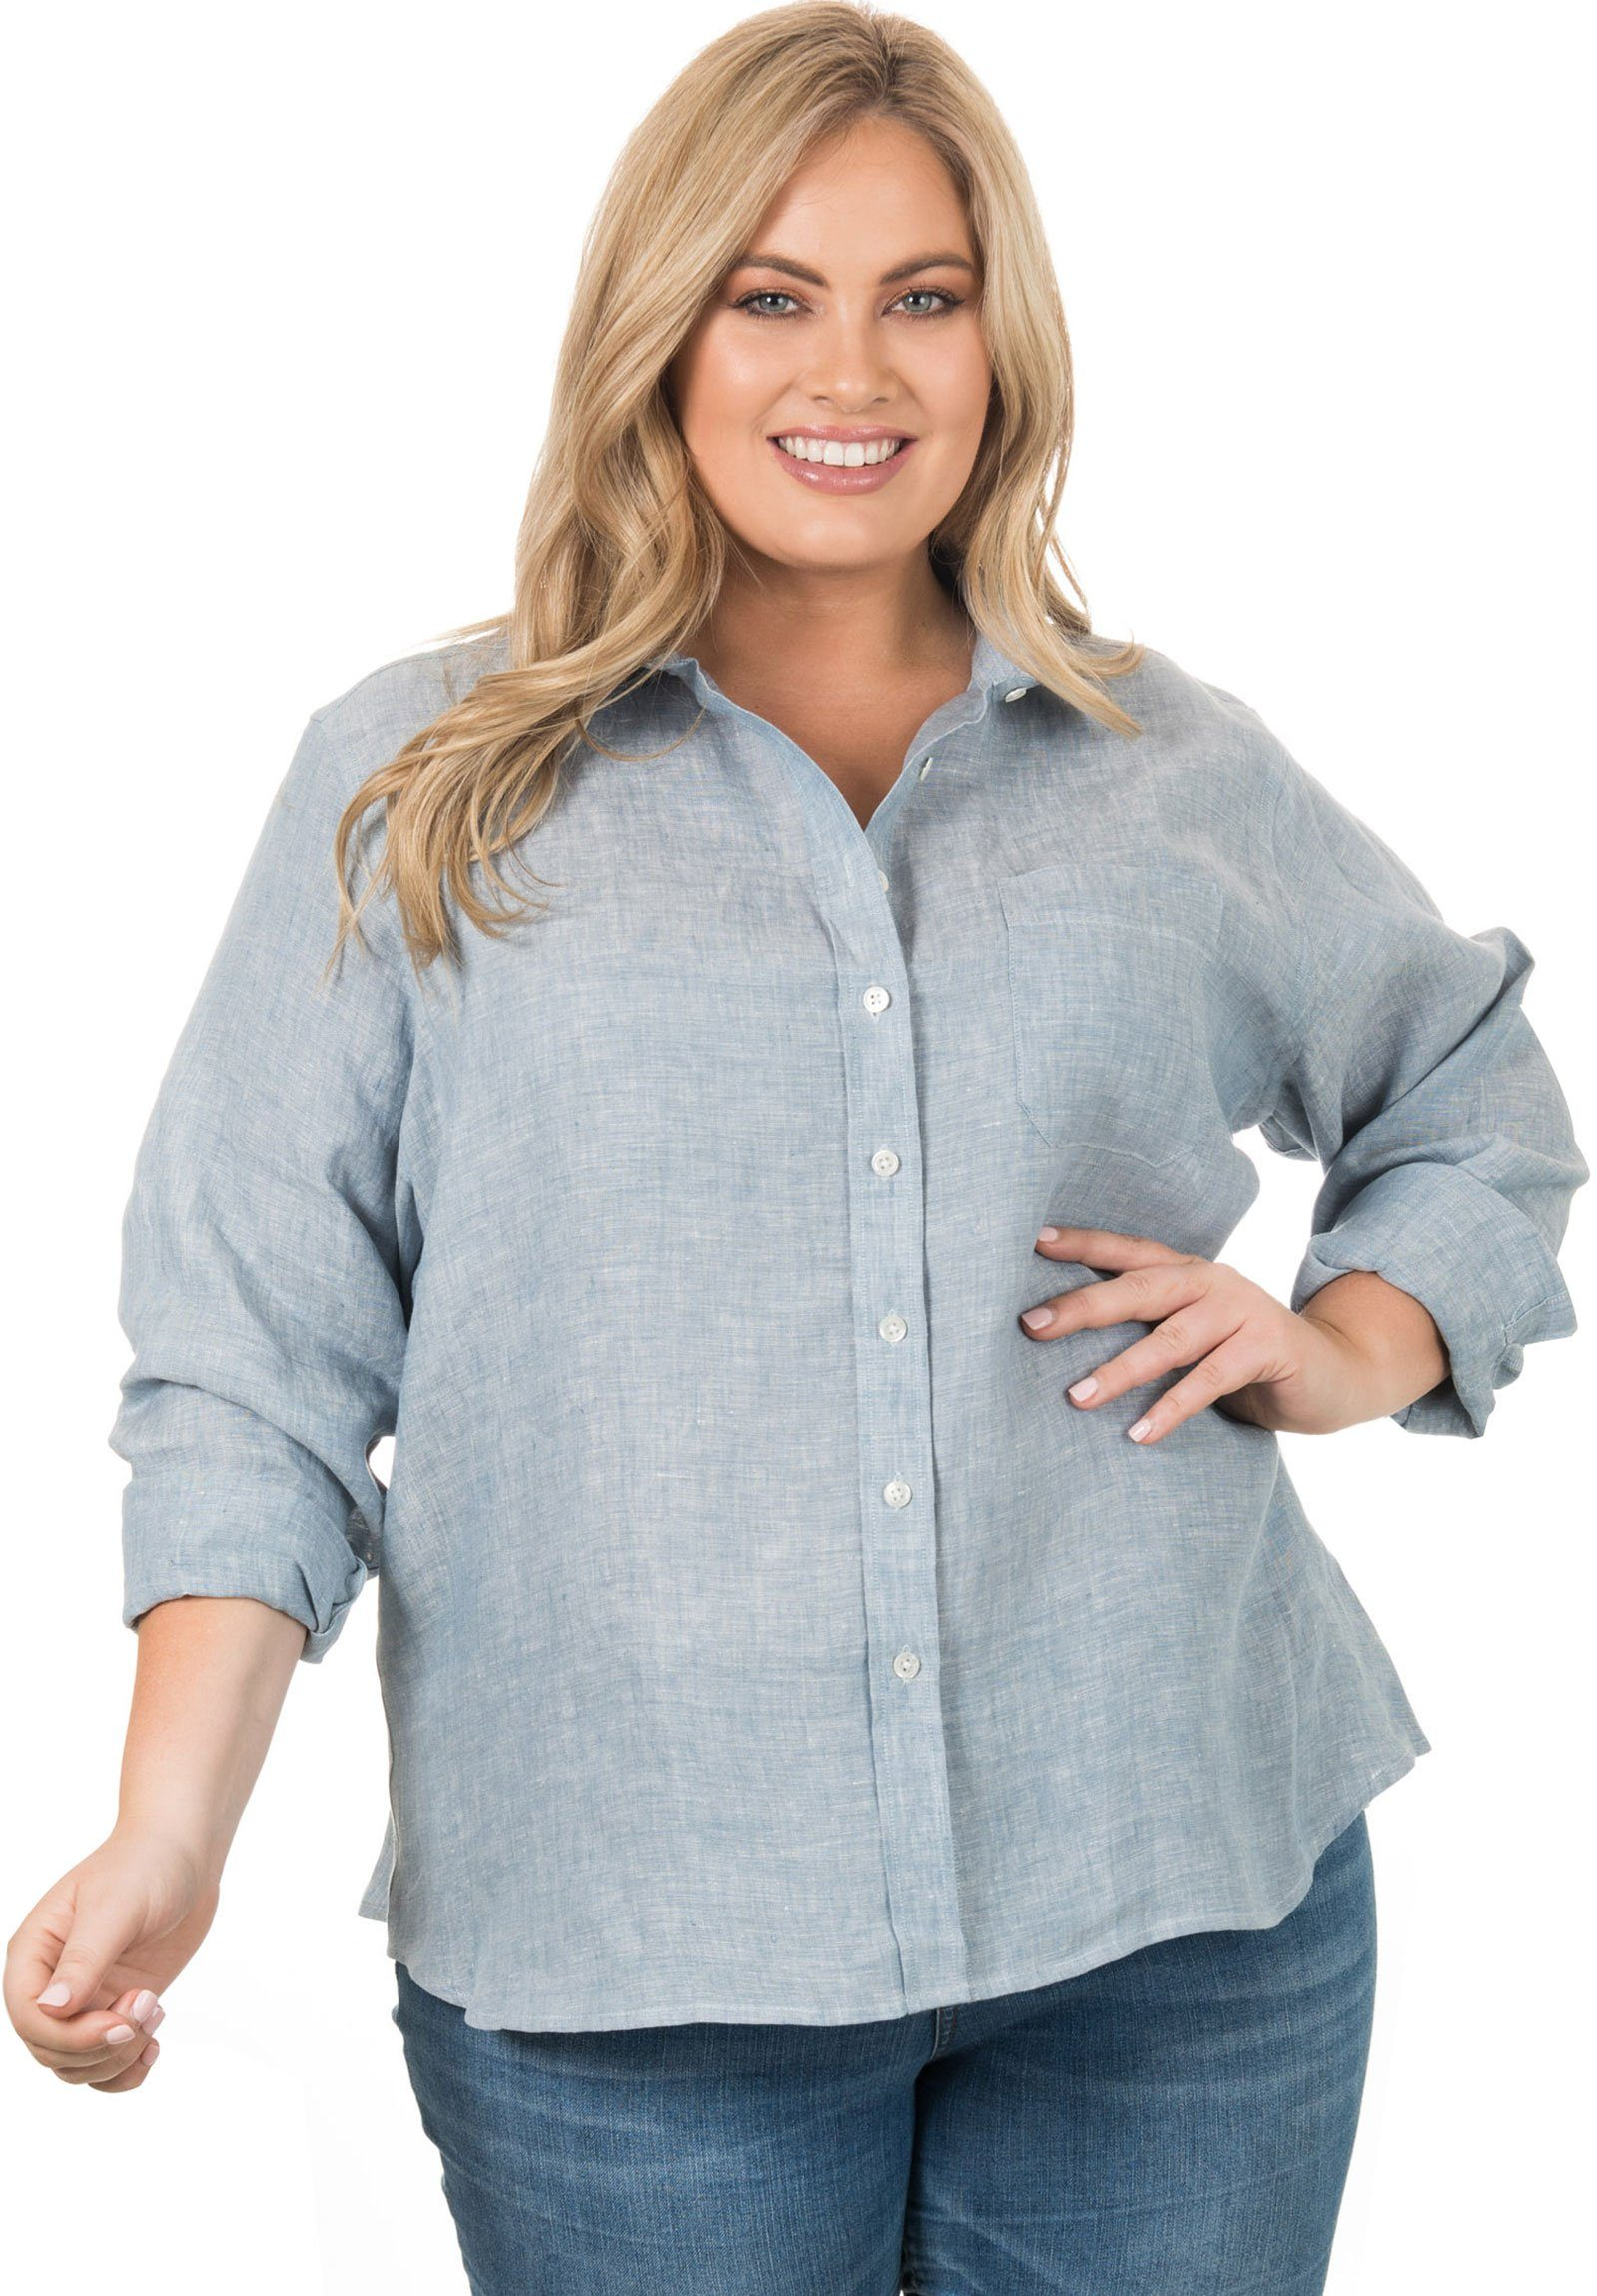 Iris Blue Melange, Plus Size Shirt